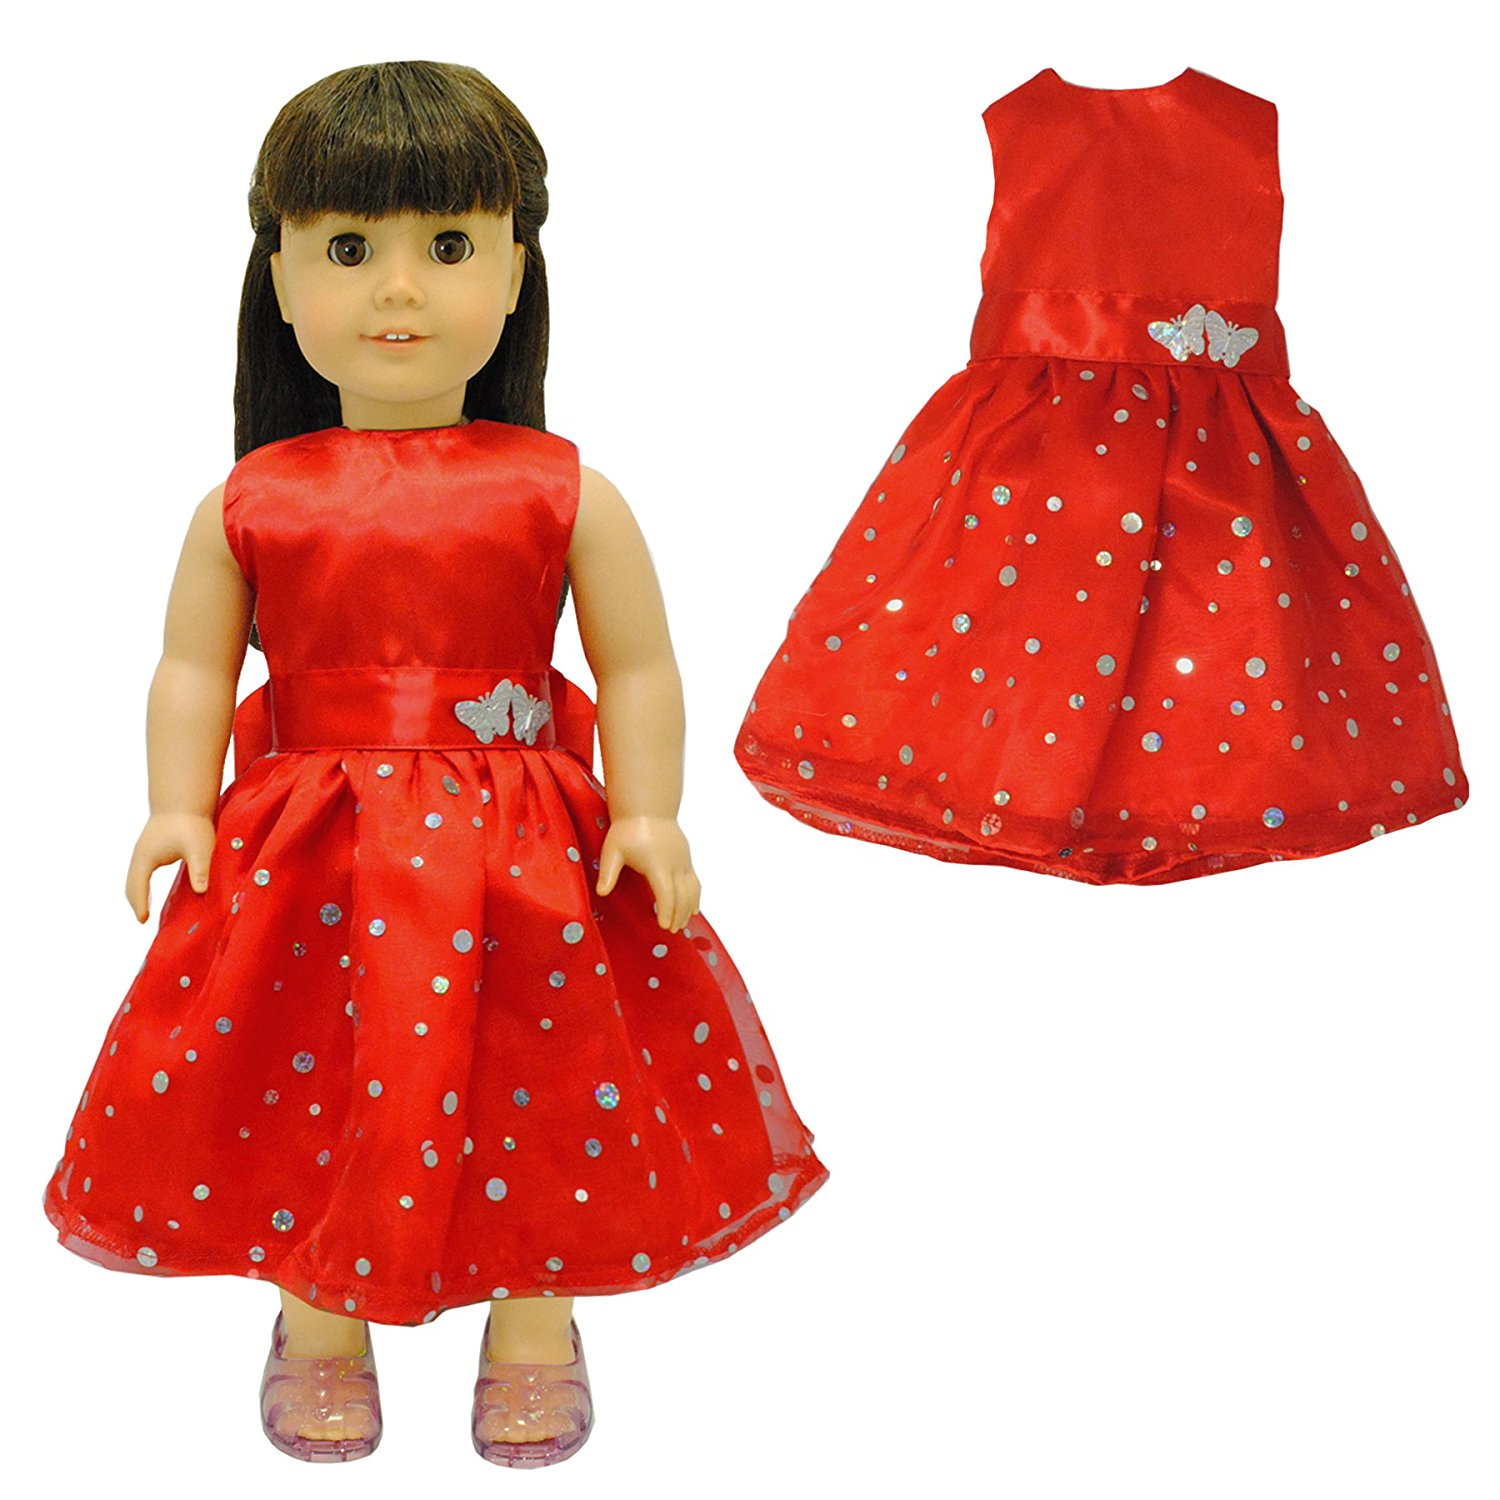 Doll Clothes Red Dress Outfit  Fits American Girl & Other 18 Inch Dolls